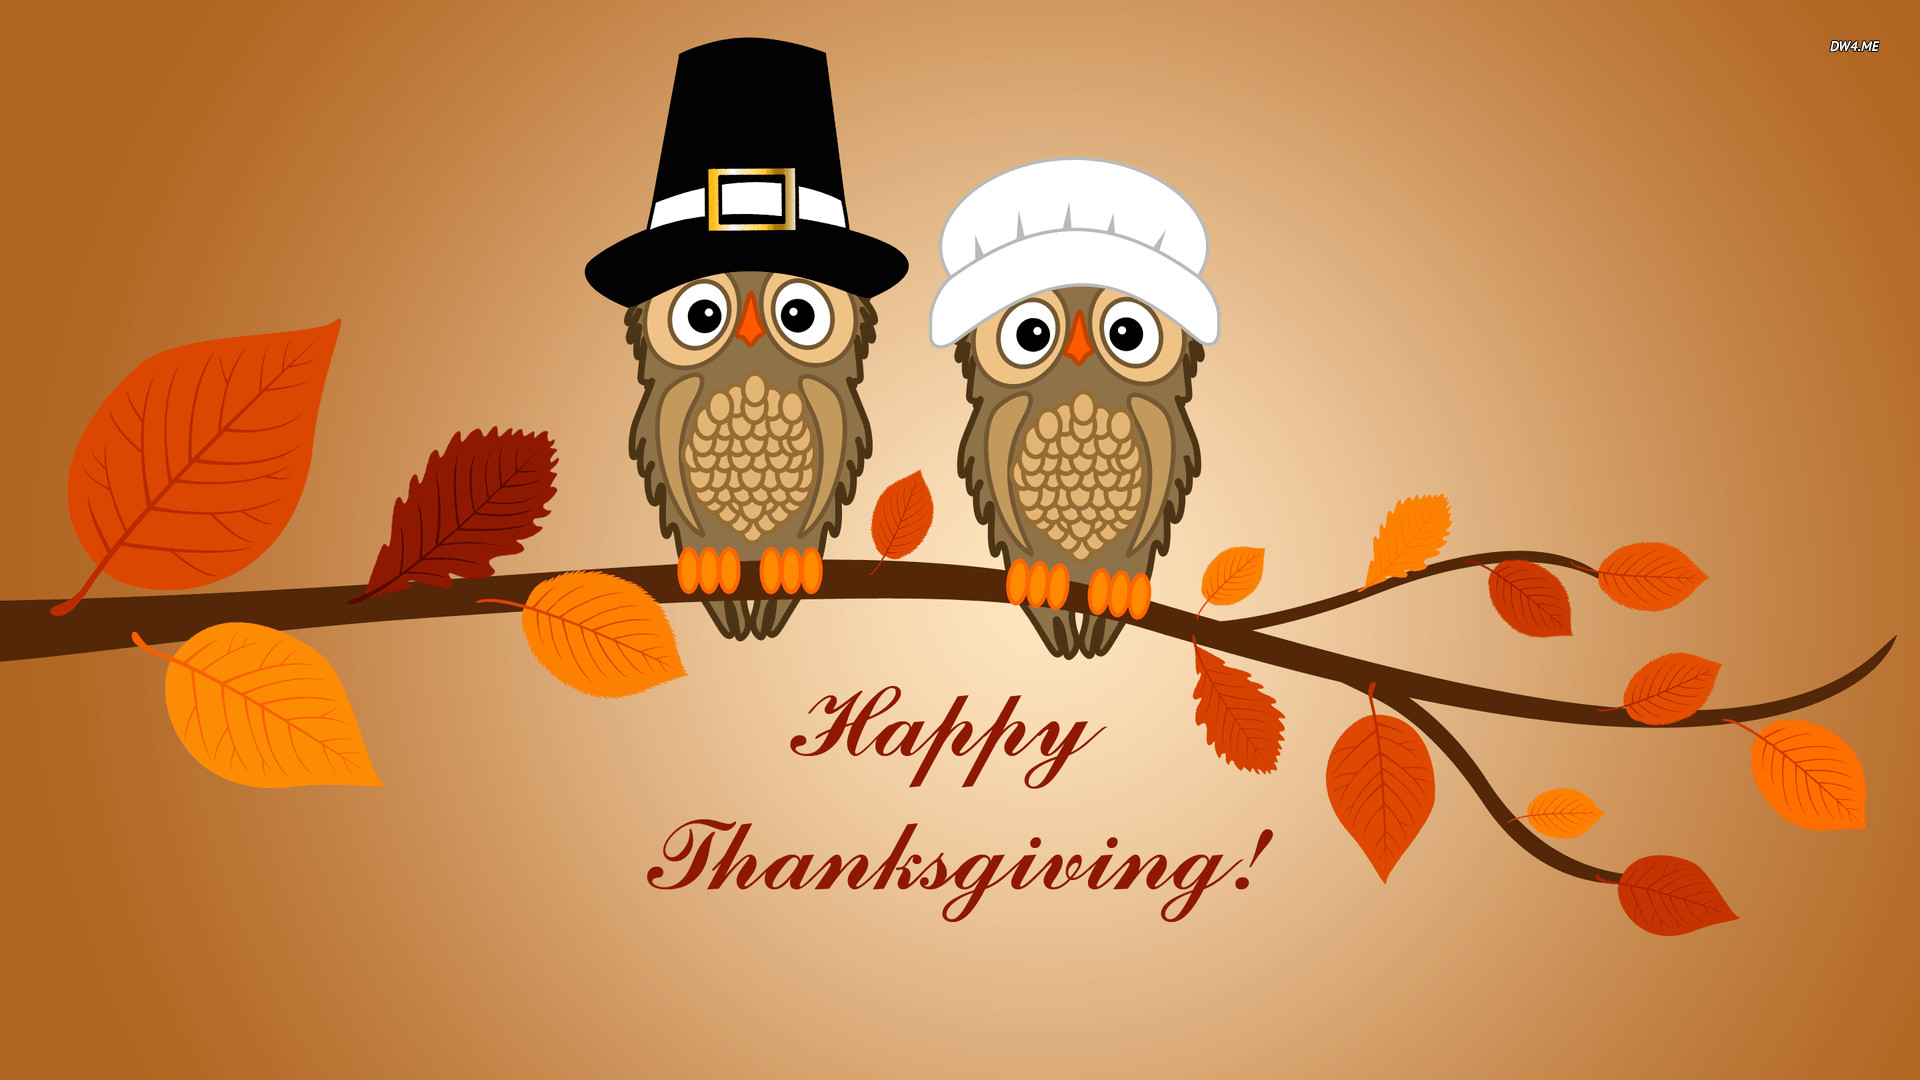 … thanksgiving 2016 wallpapers wallpaper cave …